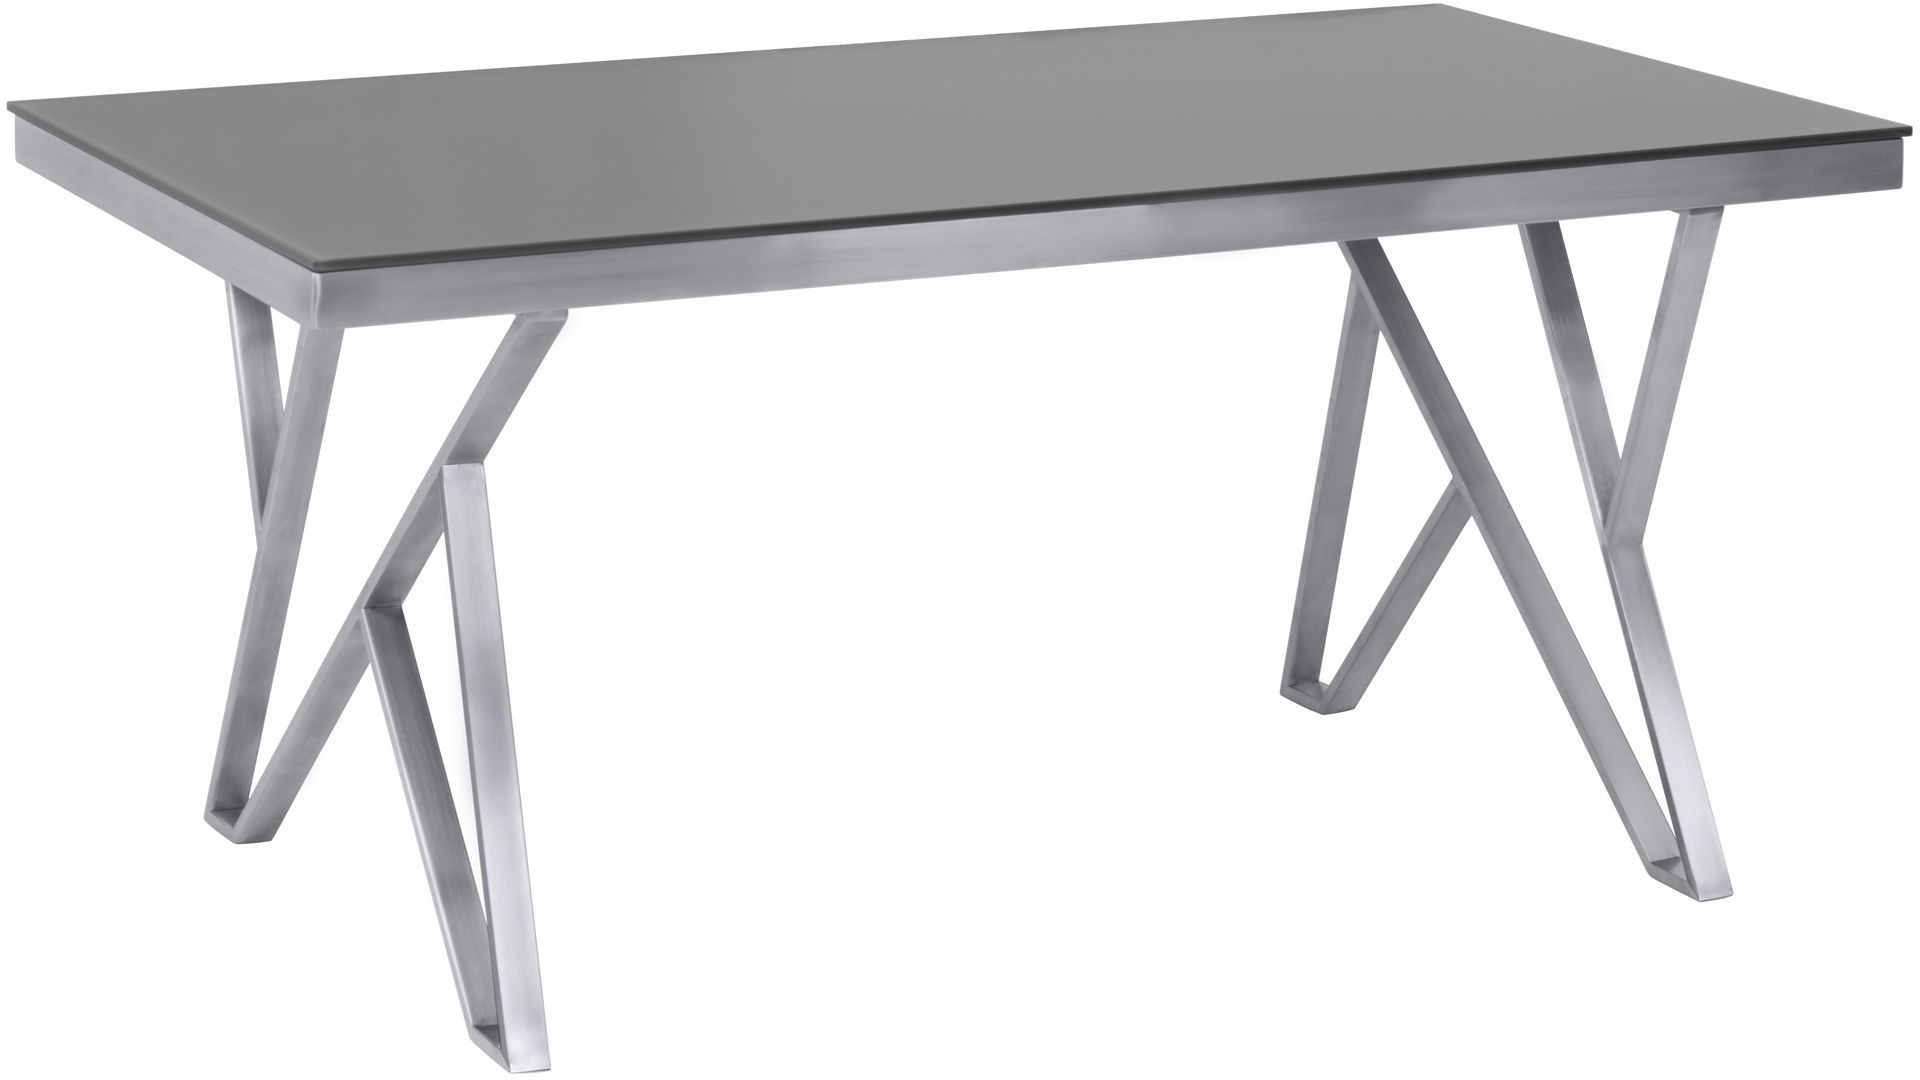 Mirage Gray Tempered Glass Top Dining Table from Armen  : lcmrditogg from colemanfurniture.com size 1920 x 1080 jpeg 97kB